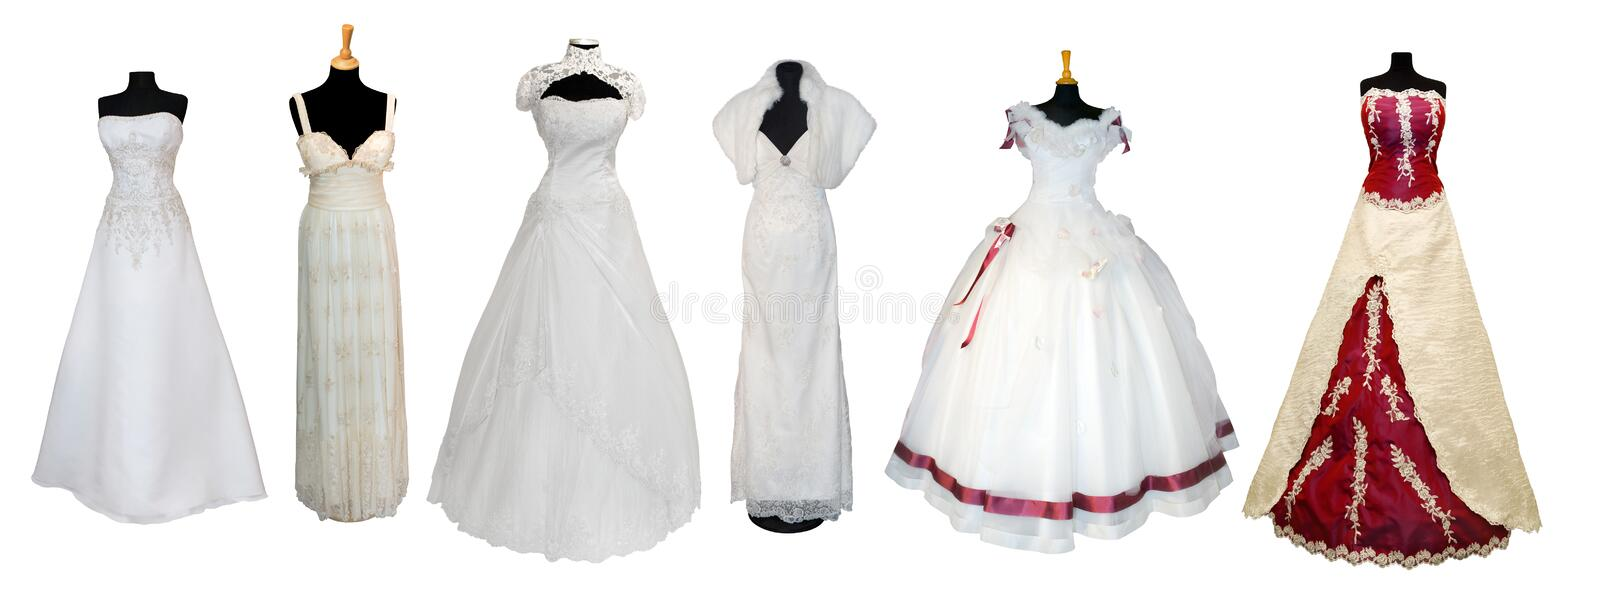 Collection of various types of wedding dresses. Isolated on white royalty free stock photo